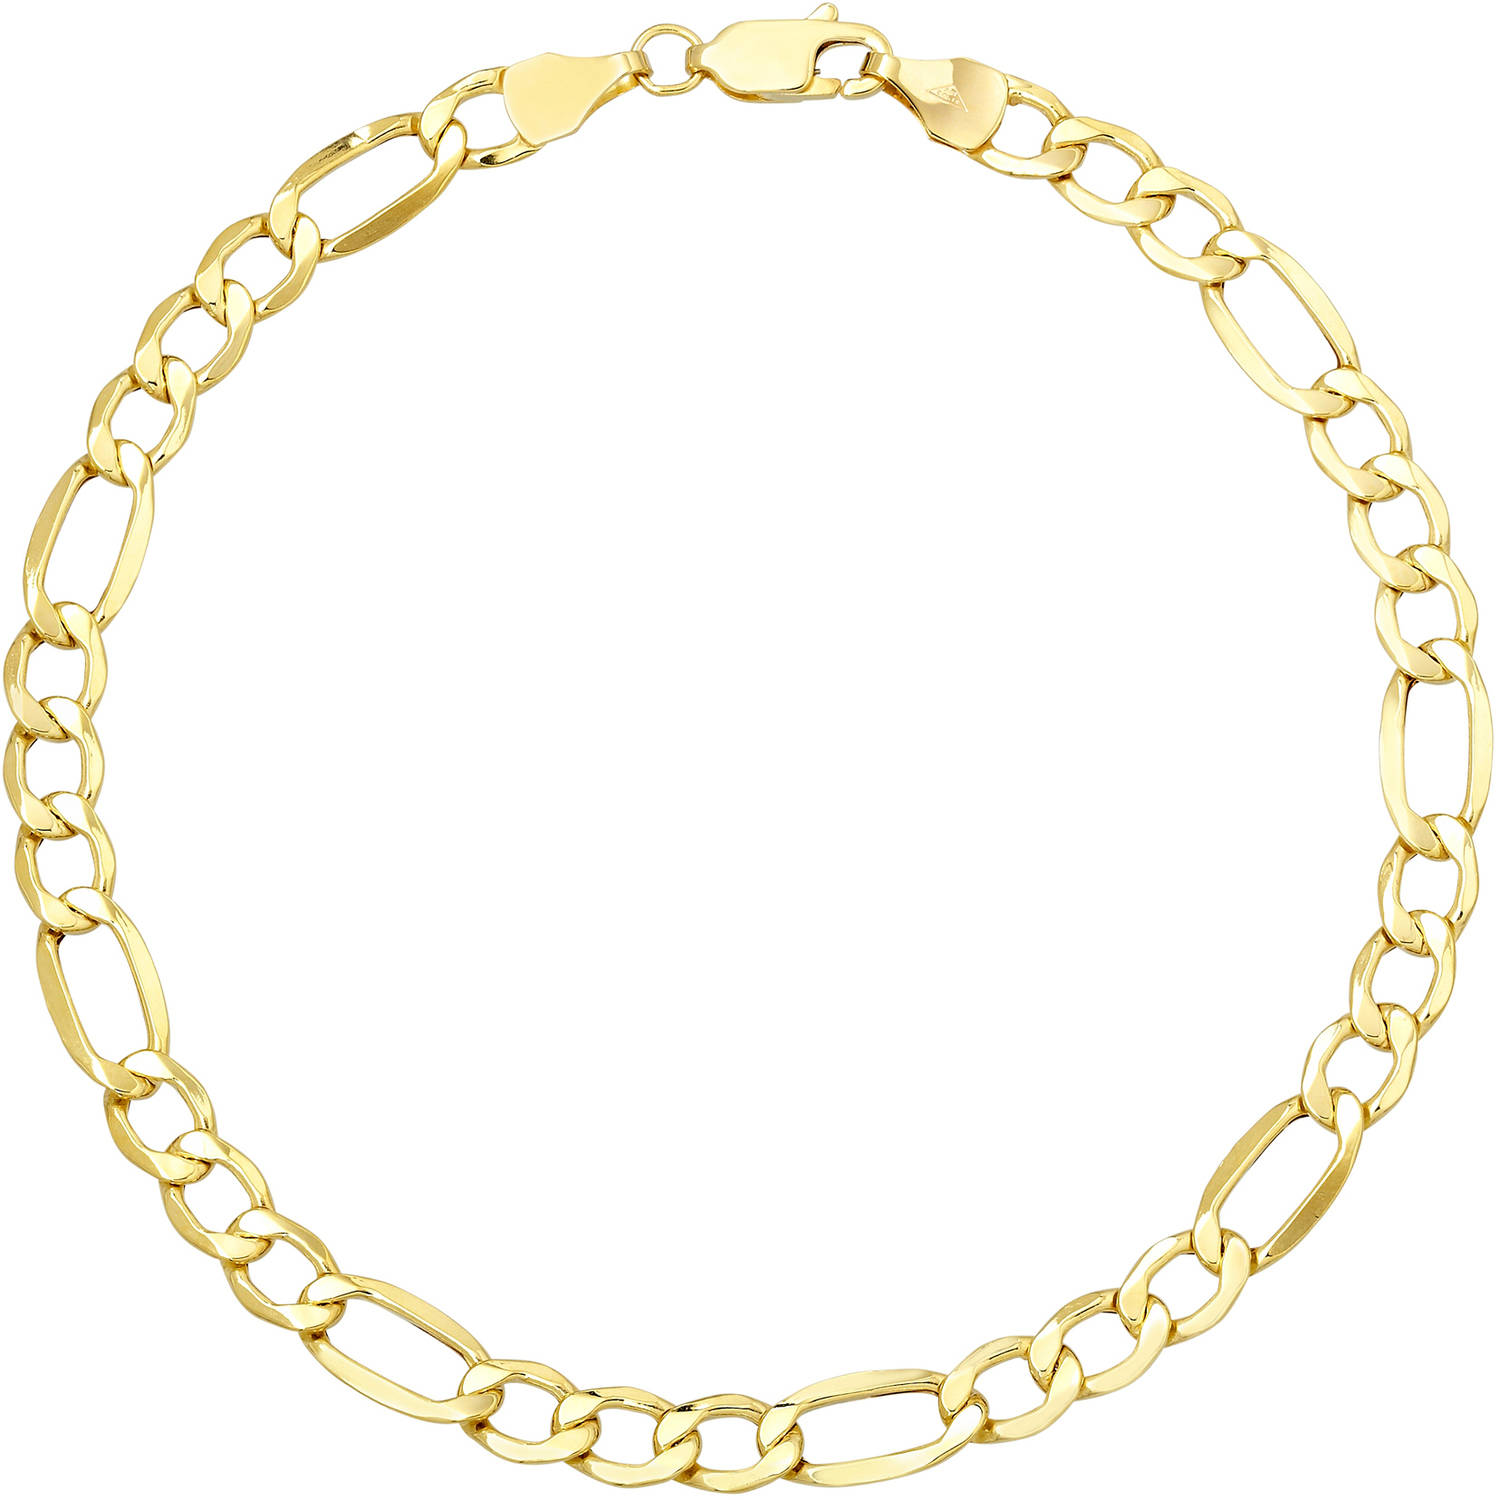 Simply Gold 10kt Yellow Gold Figaro Chain-Style Bracelet, 8